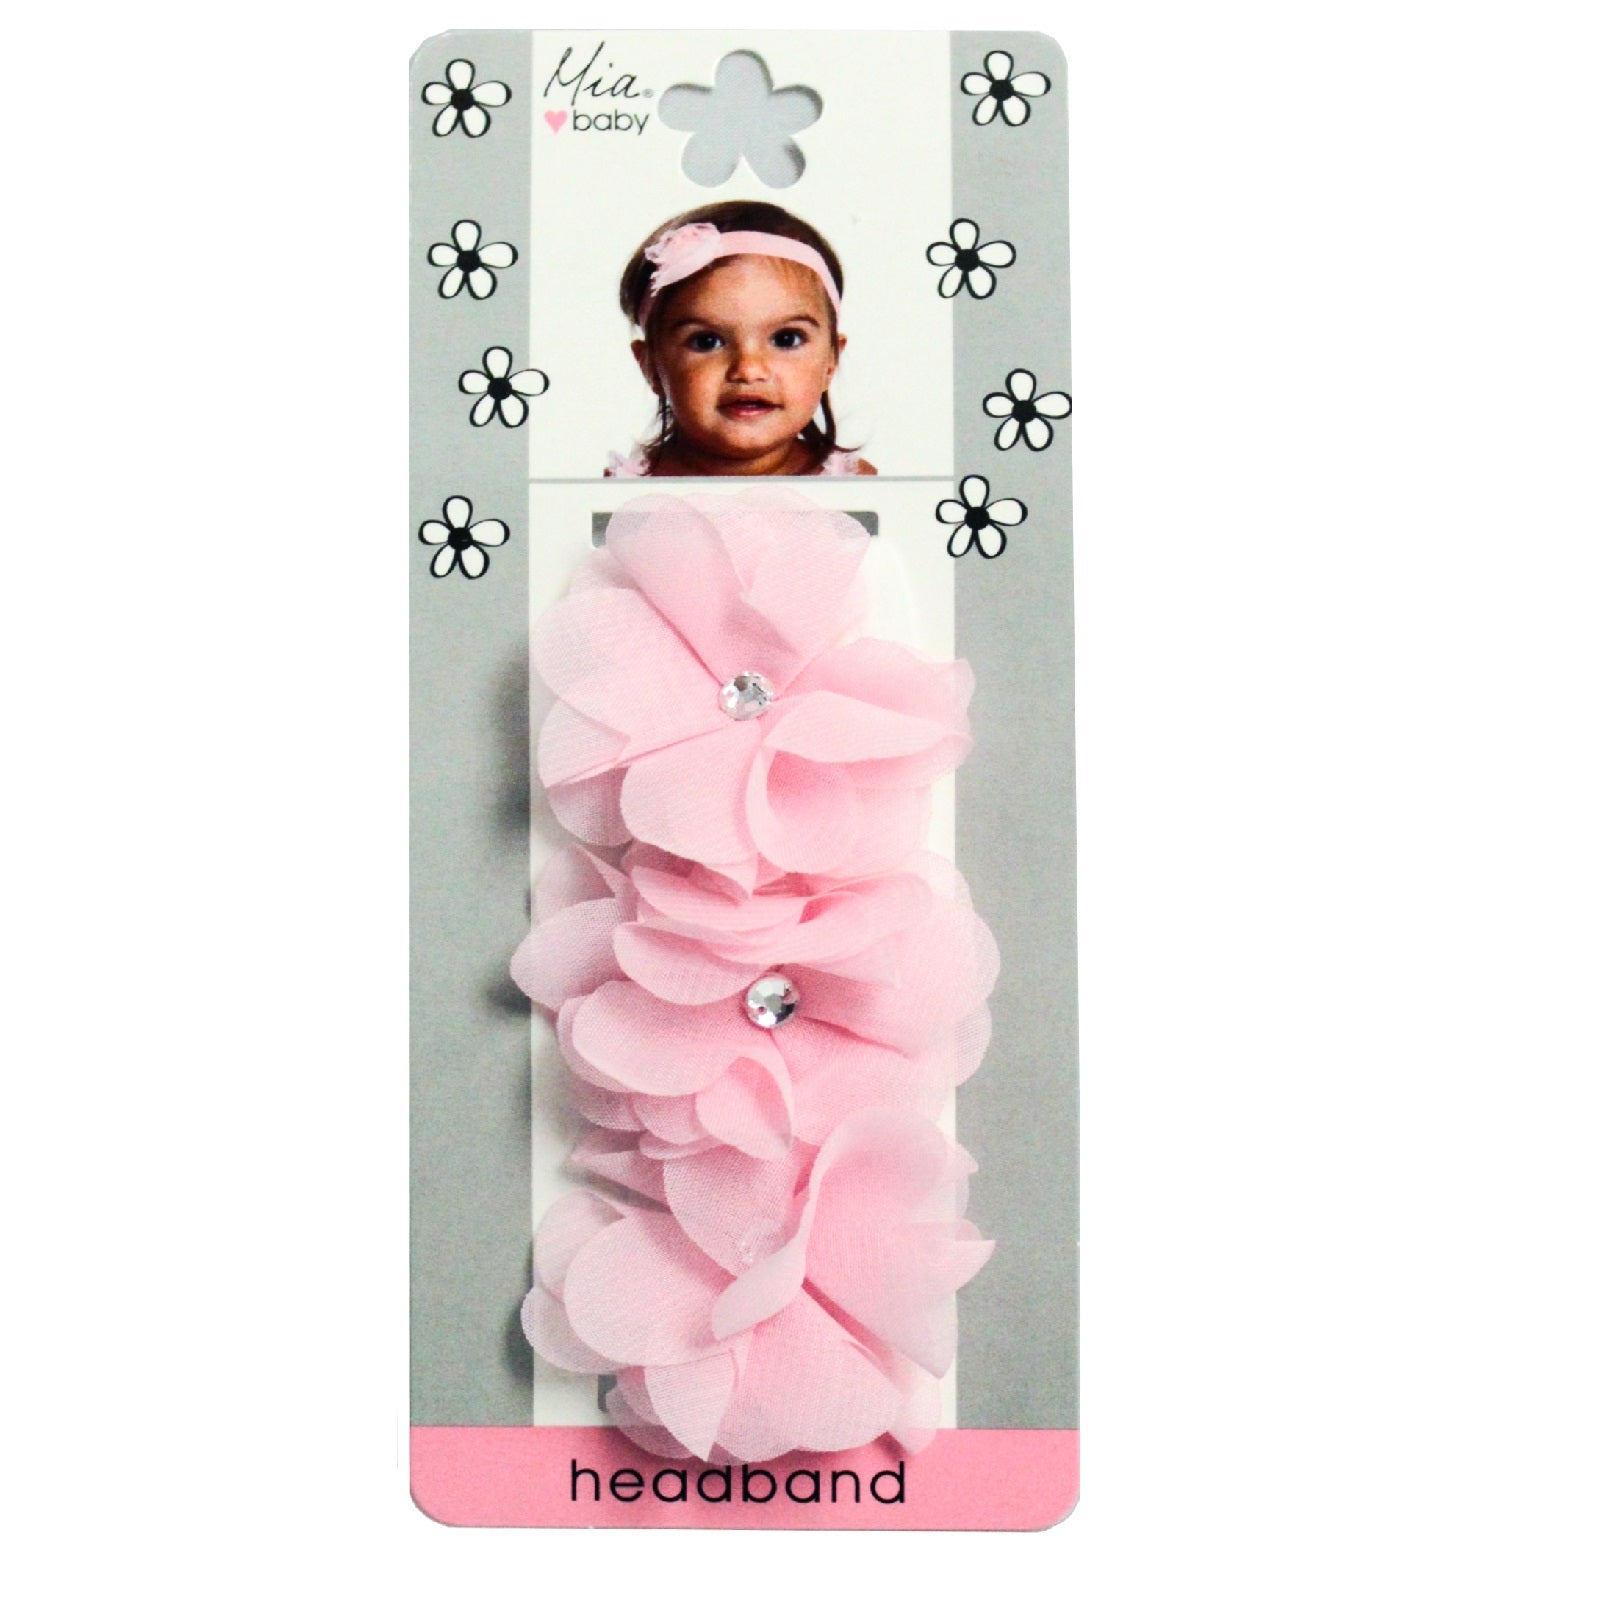 Mia® Baby Chiffon Flower Headband - light pink headband and light pink flowers - shown on packaging - invented by #MiaKaminski #MiaBeauty #Mia #Beauty #Baby #hair #hairaccessories #hairclips #hairbarrettes #love #life #girl #woman